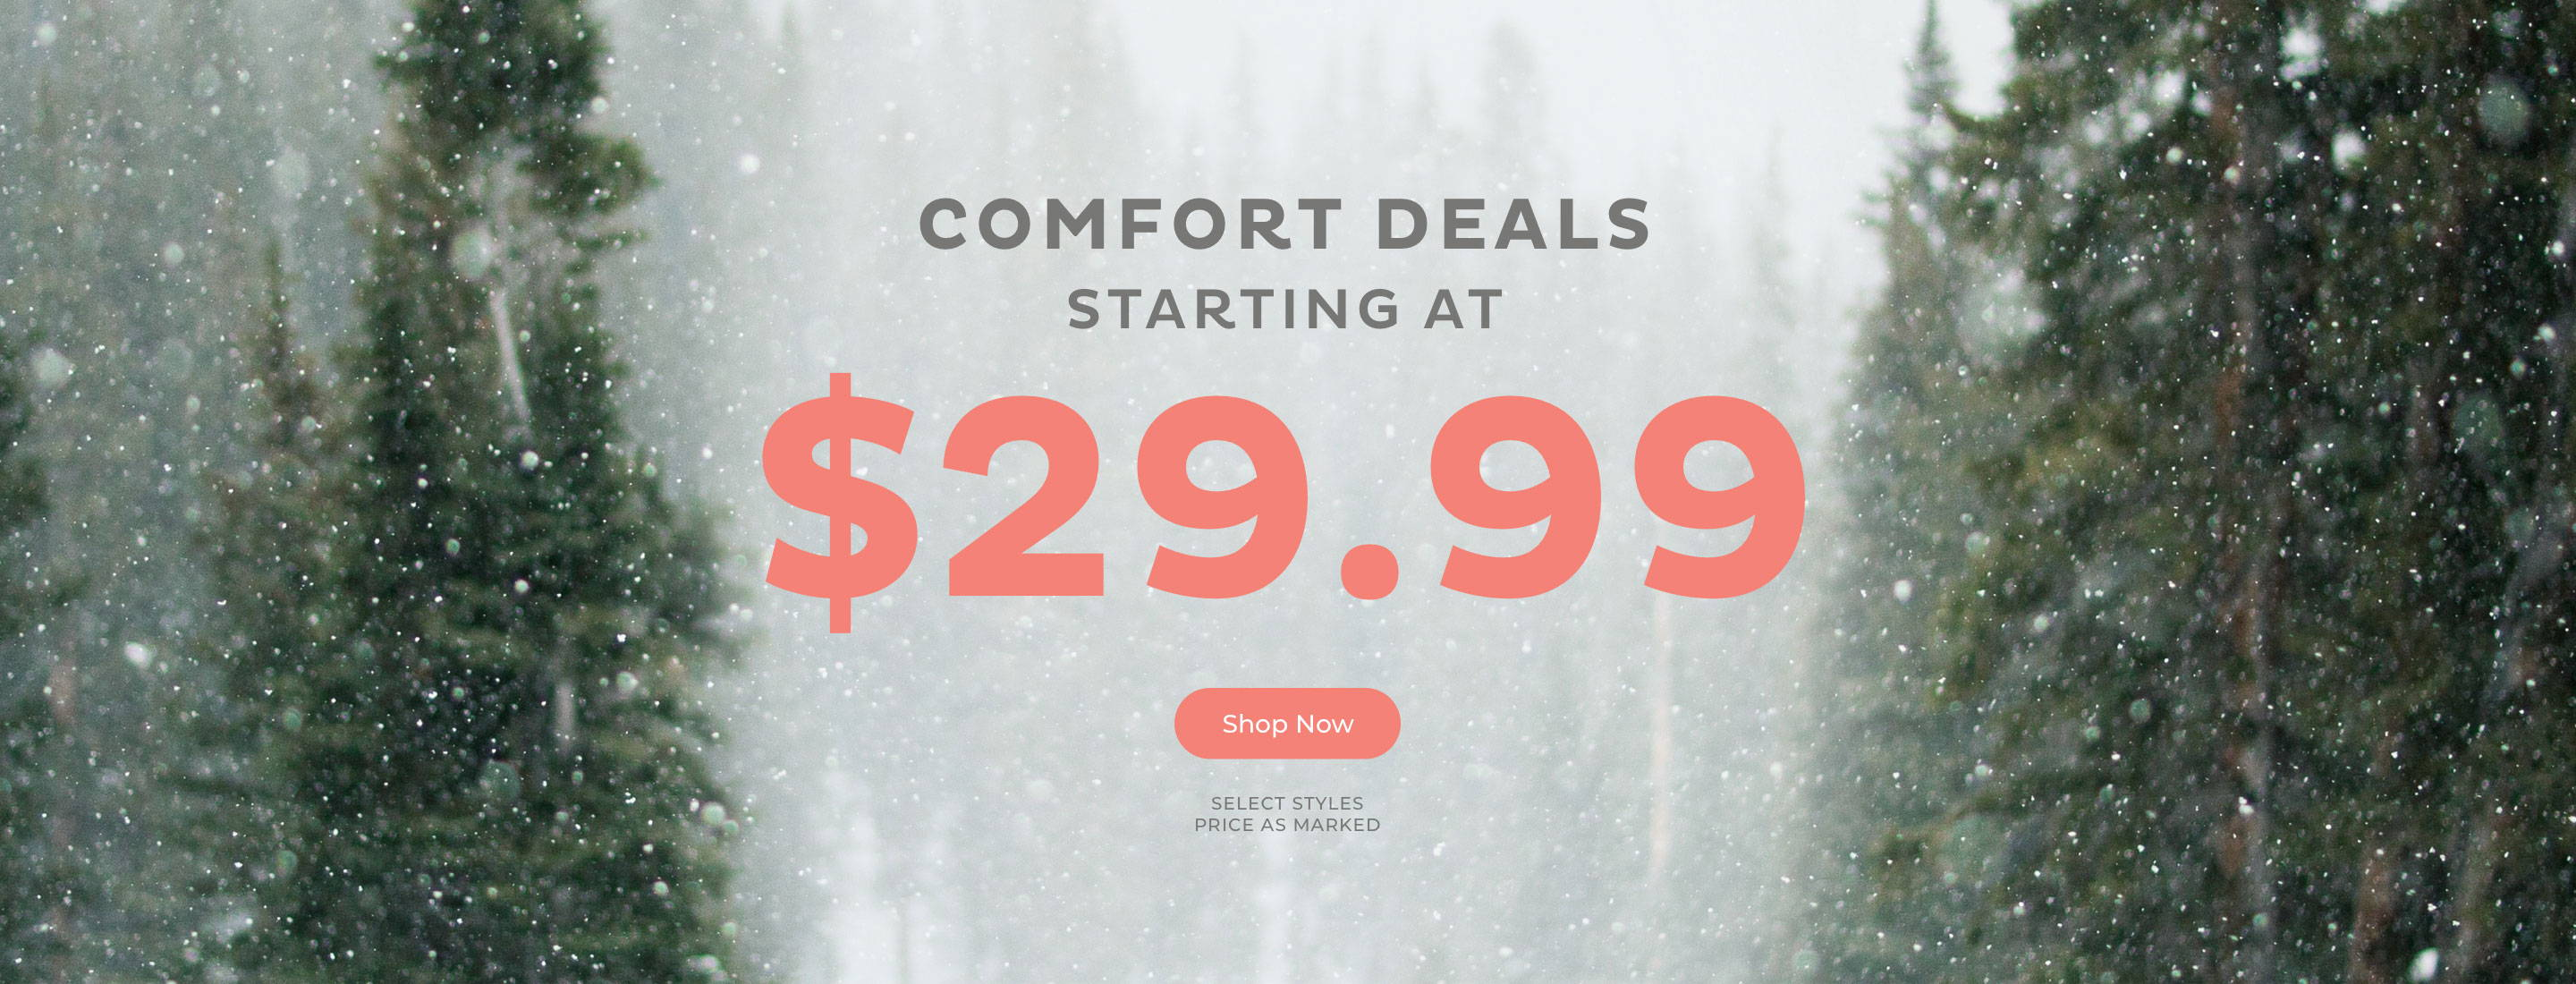 Comfort Deals Starting at $29.99